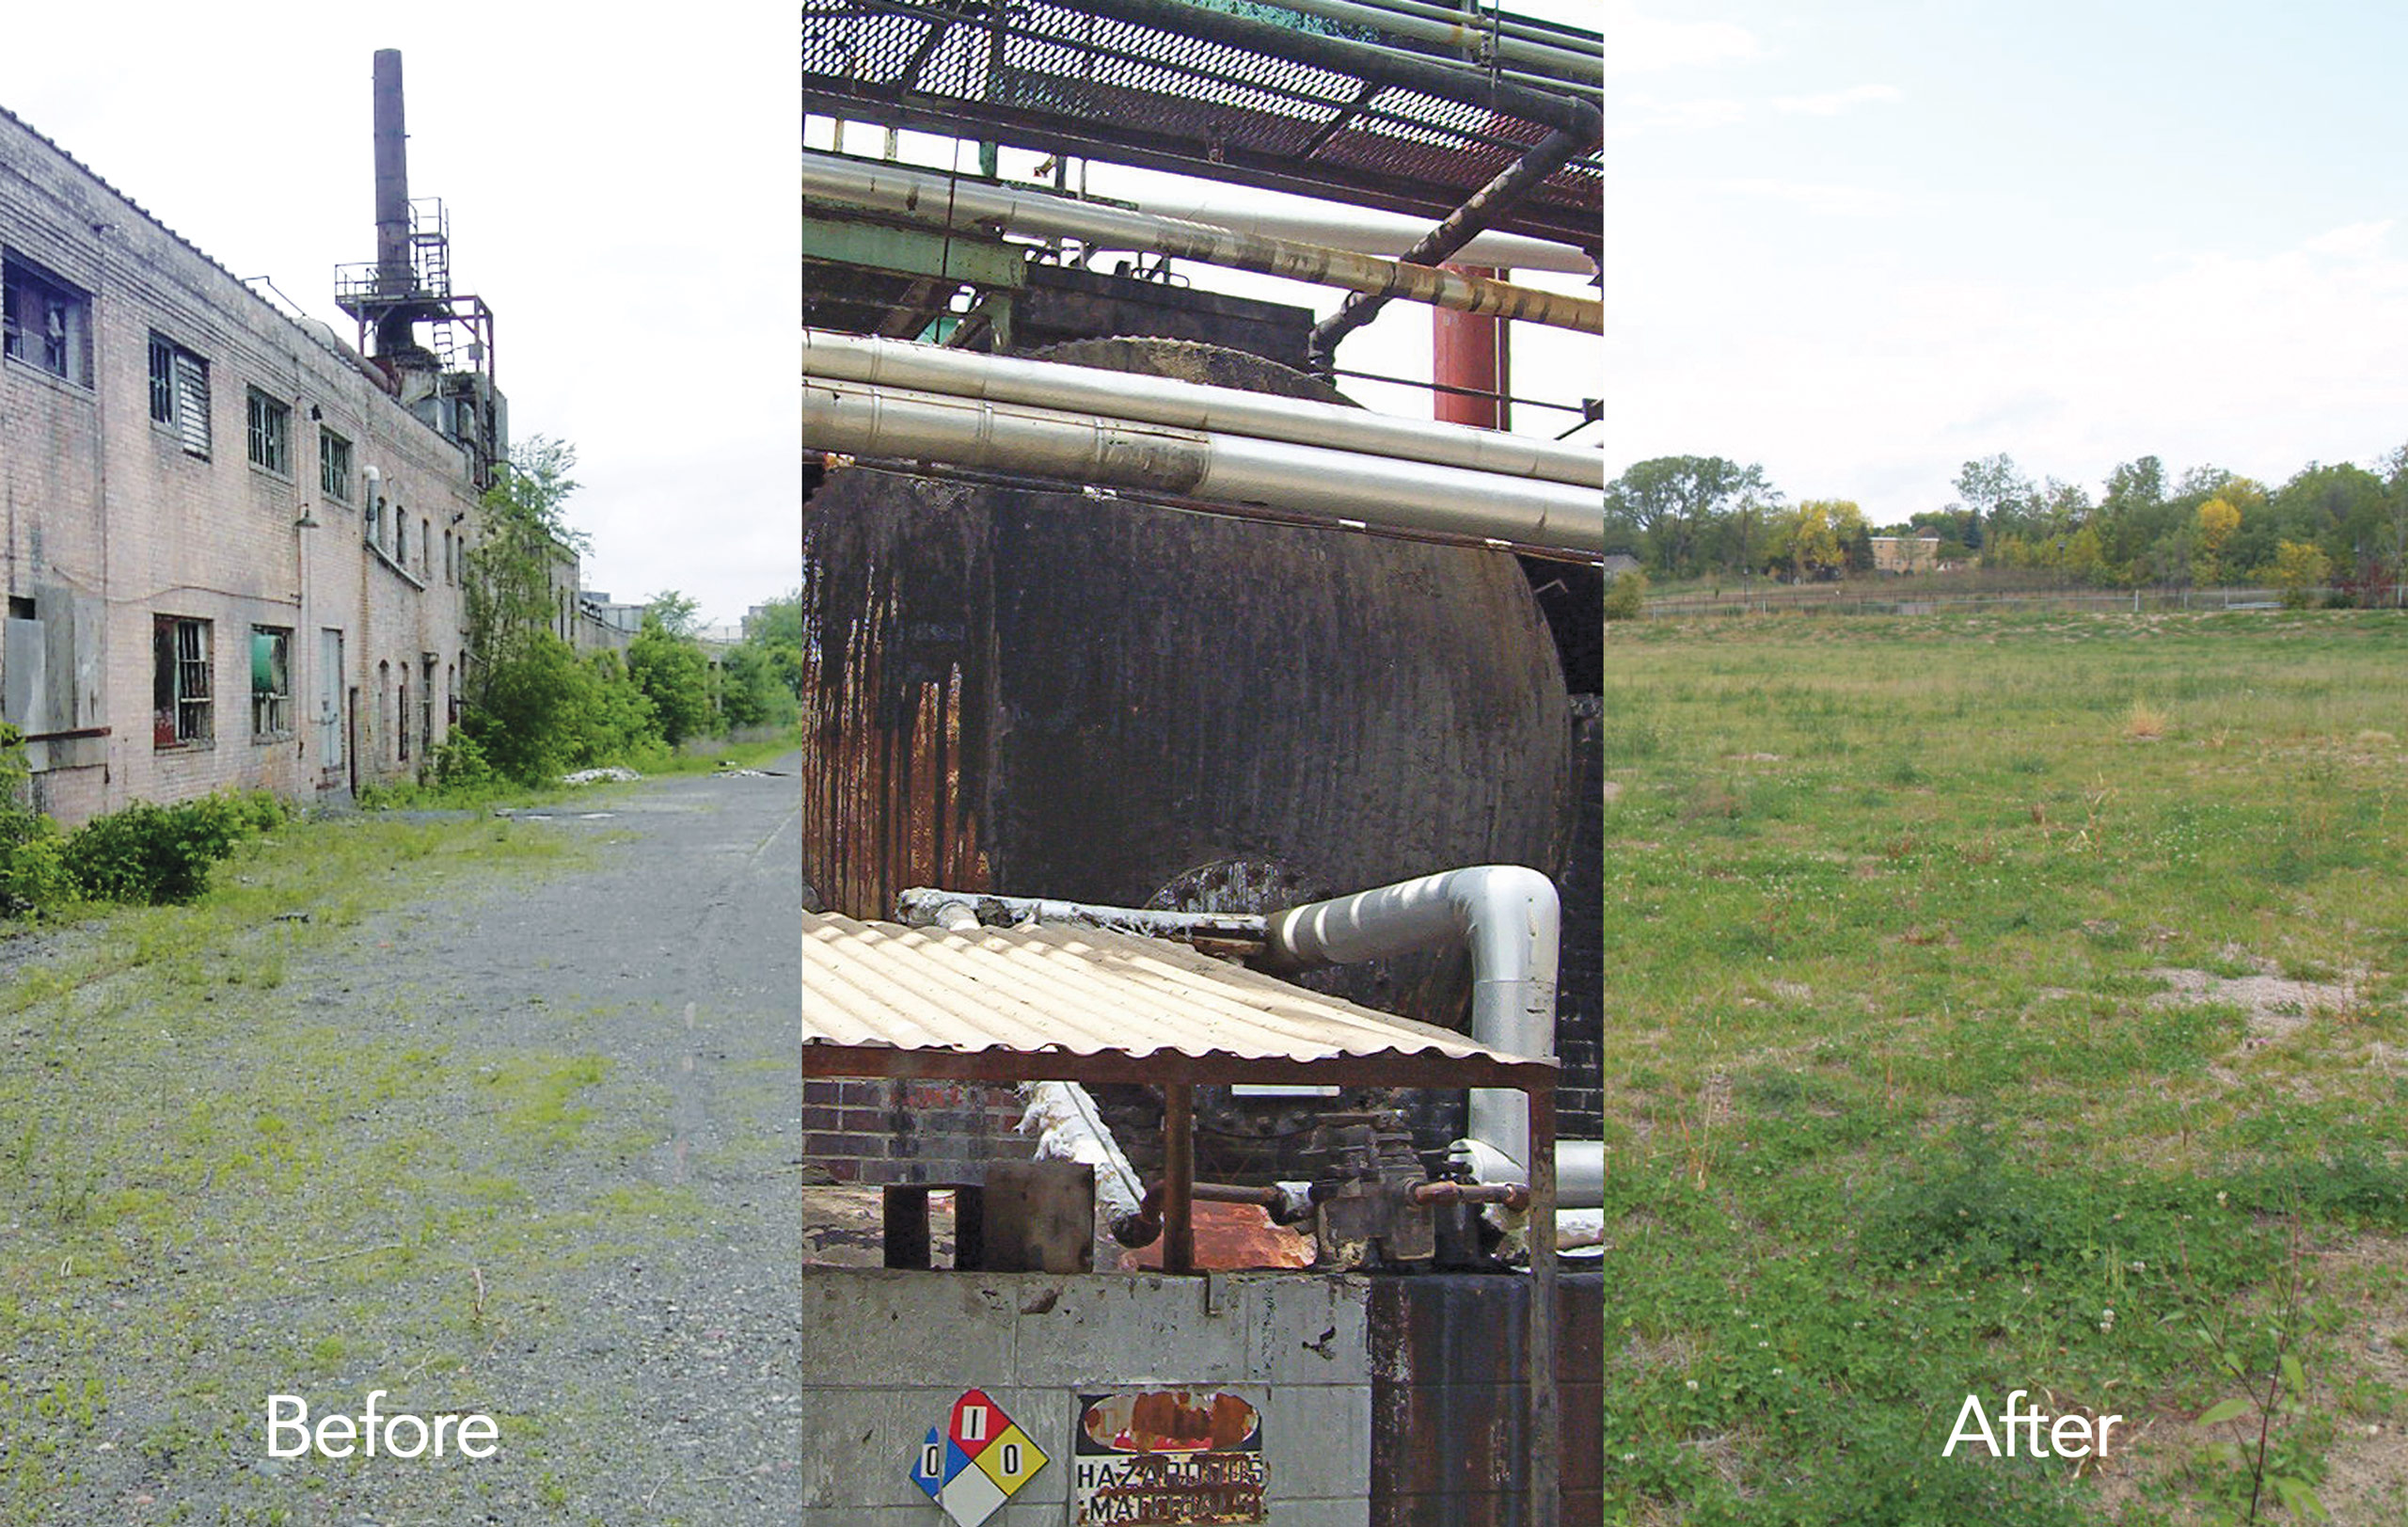 Before and After Globe Asphalt Shingle Plant Demolition and Remediation by Loucks in Minneapolis